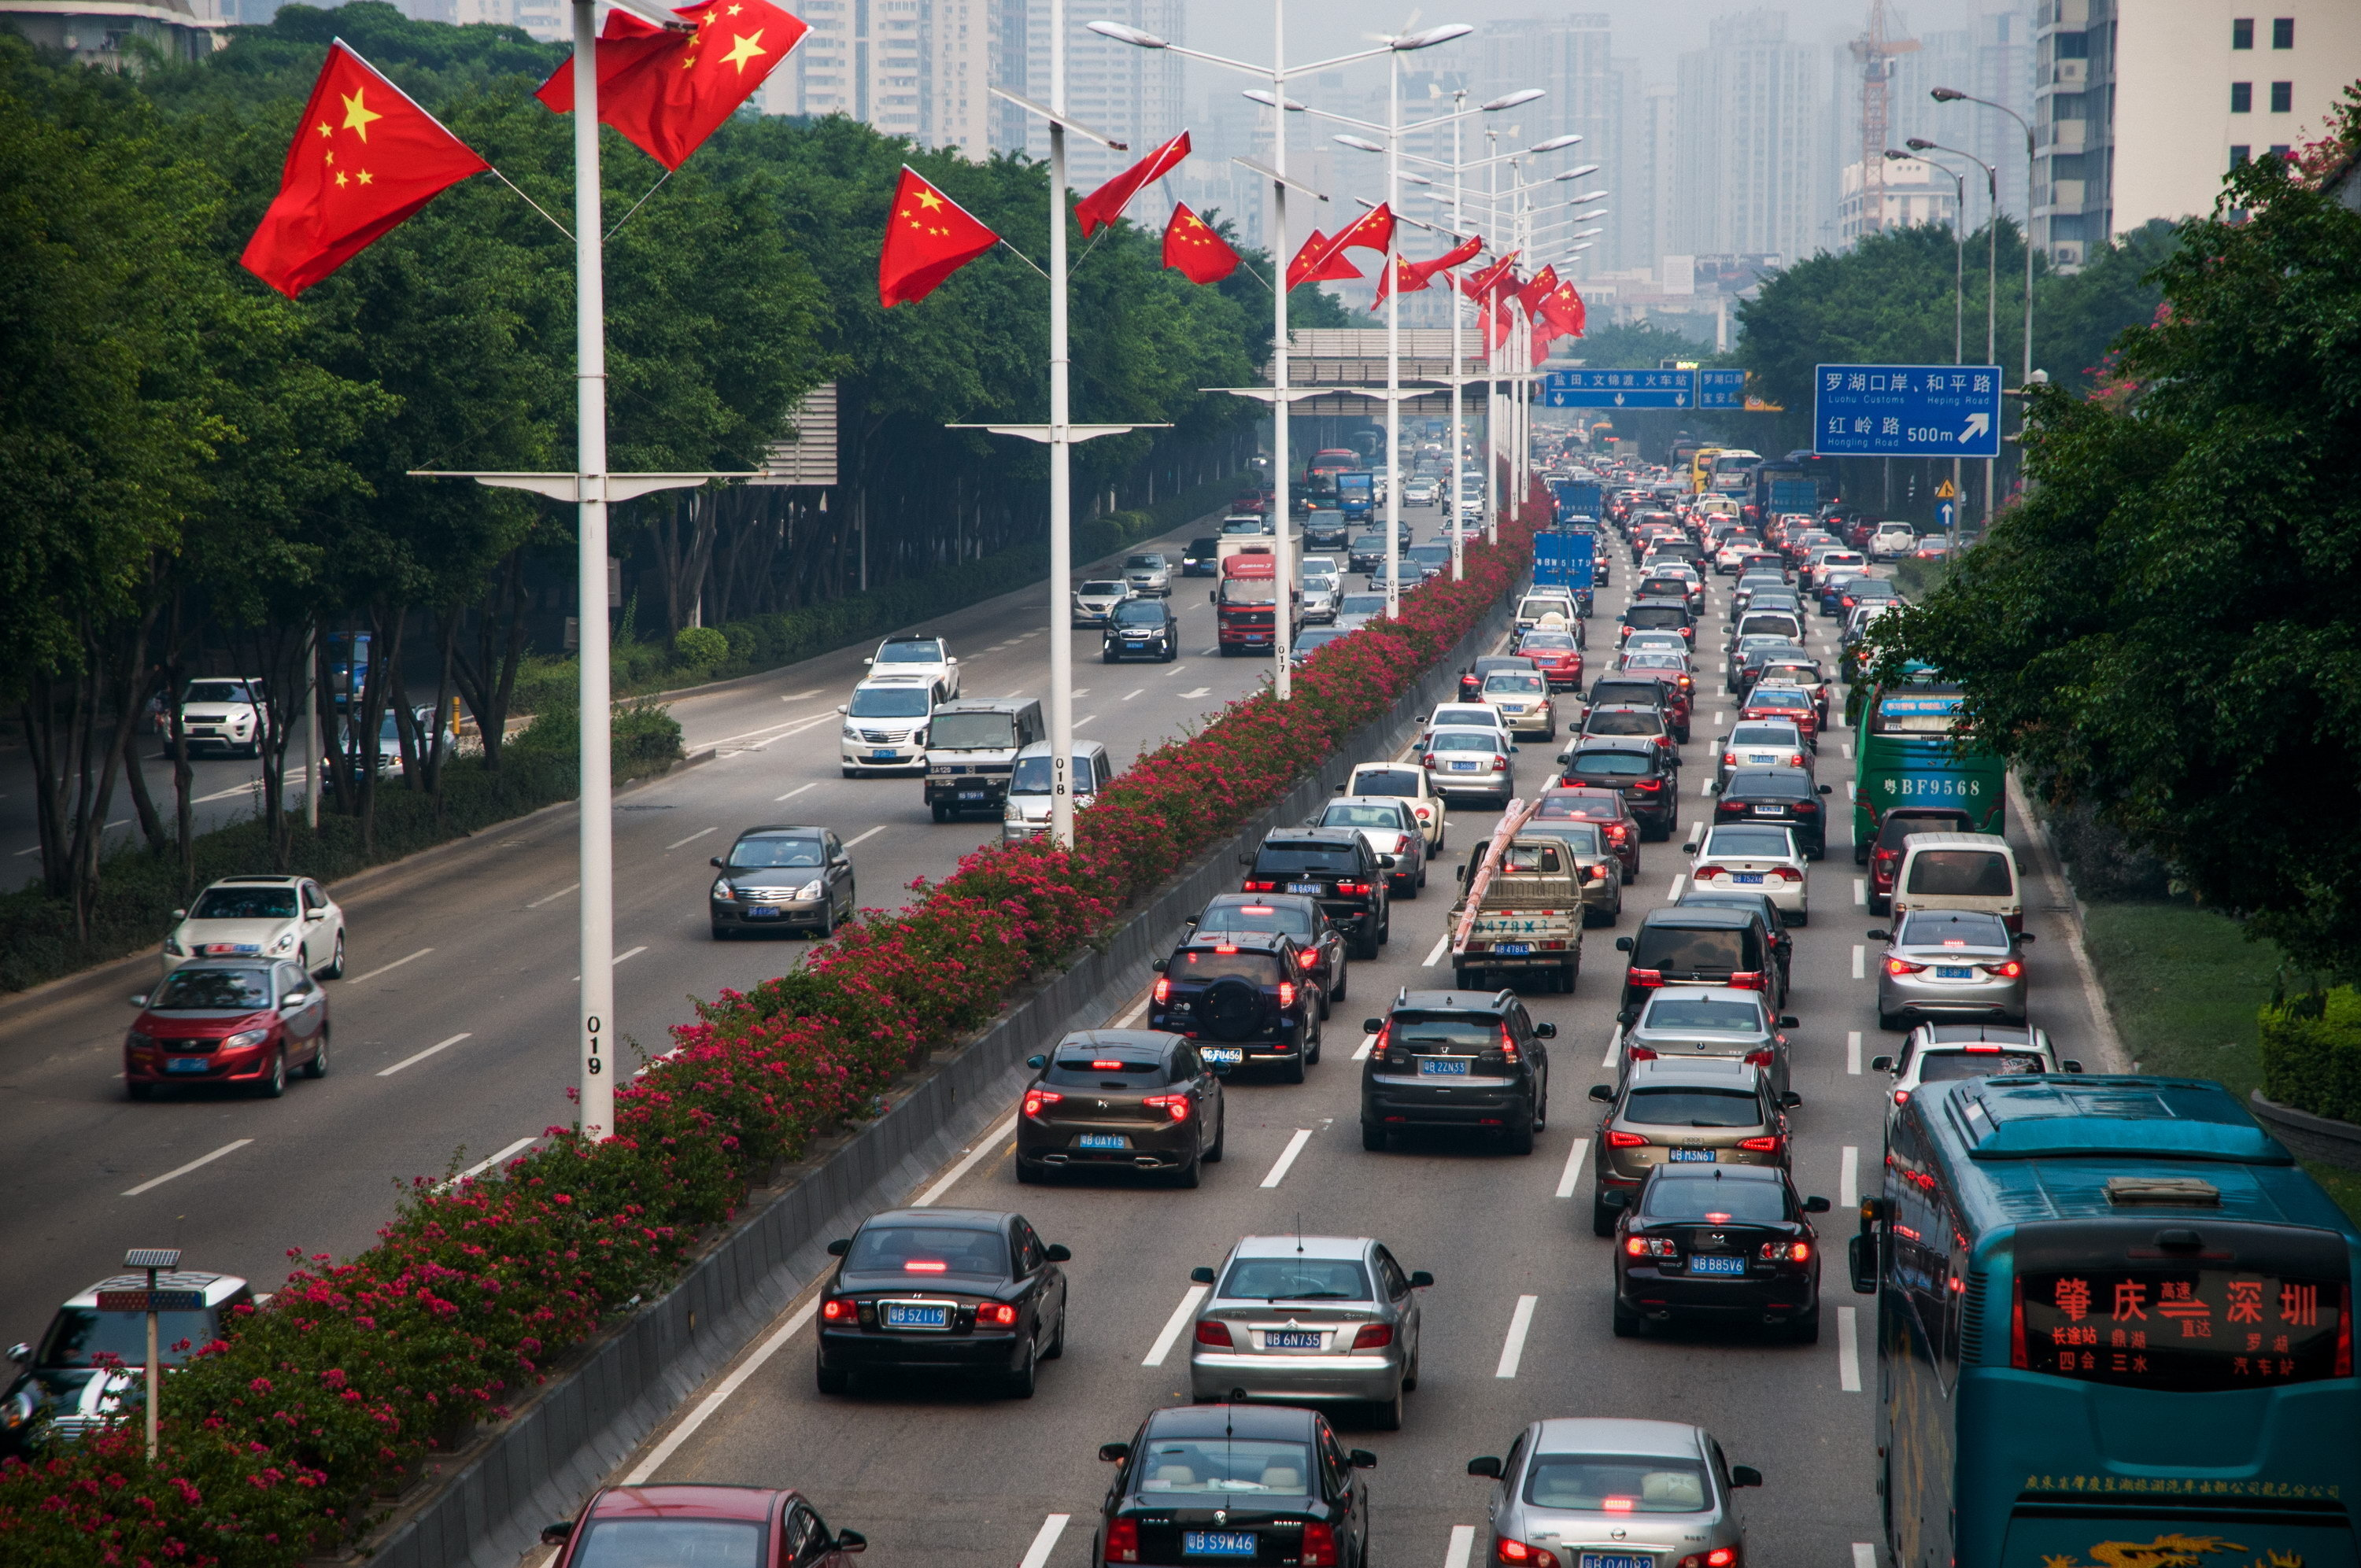 A traffic jam in Shenzhen. China's market for electric cars is rapidly expanding thanks to aggressive government actions, and Audi wants a piece of the pie.